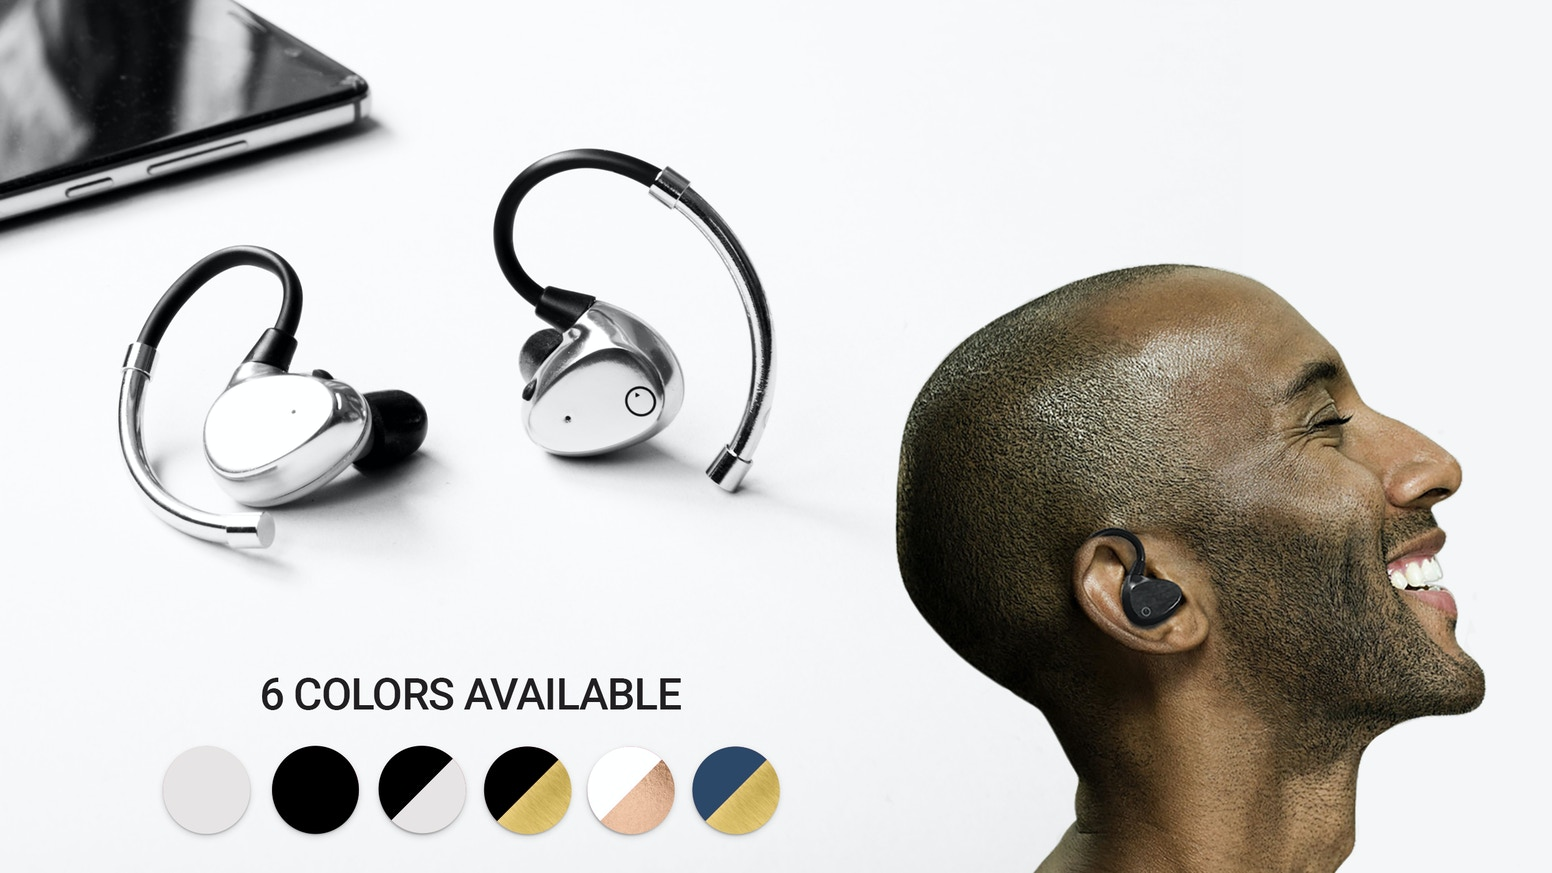 High Resolution Audio - Bluetooth 5.0 - 52 Hours Playtime - Beautiful Design - Secure Fit - Instant Pairing - USB Type C